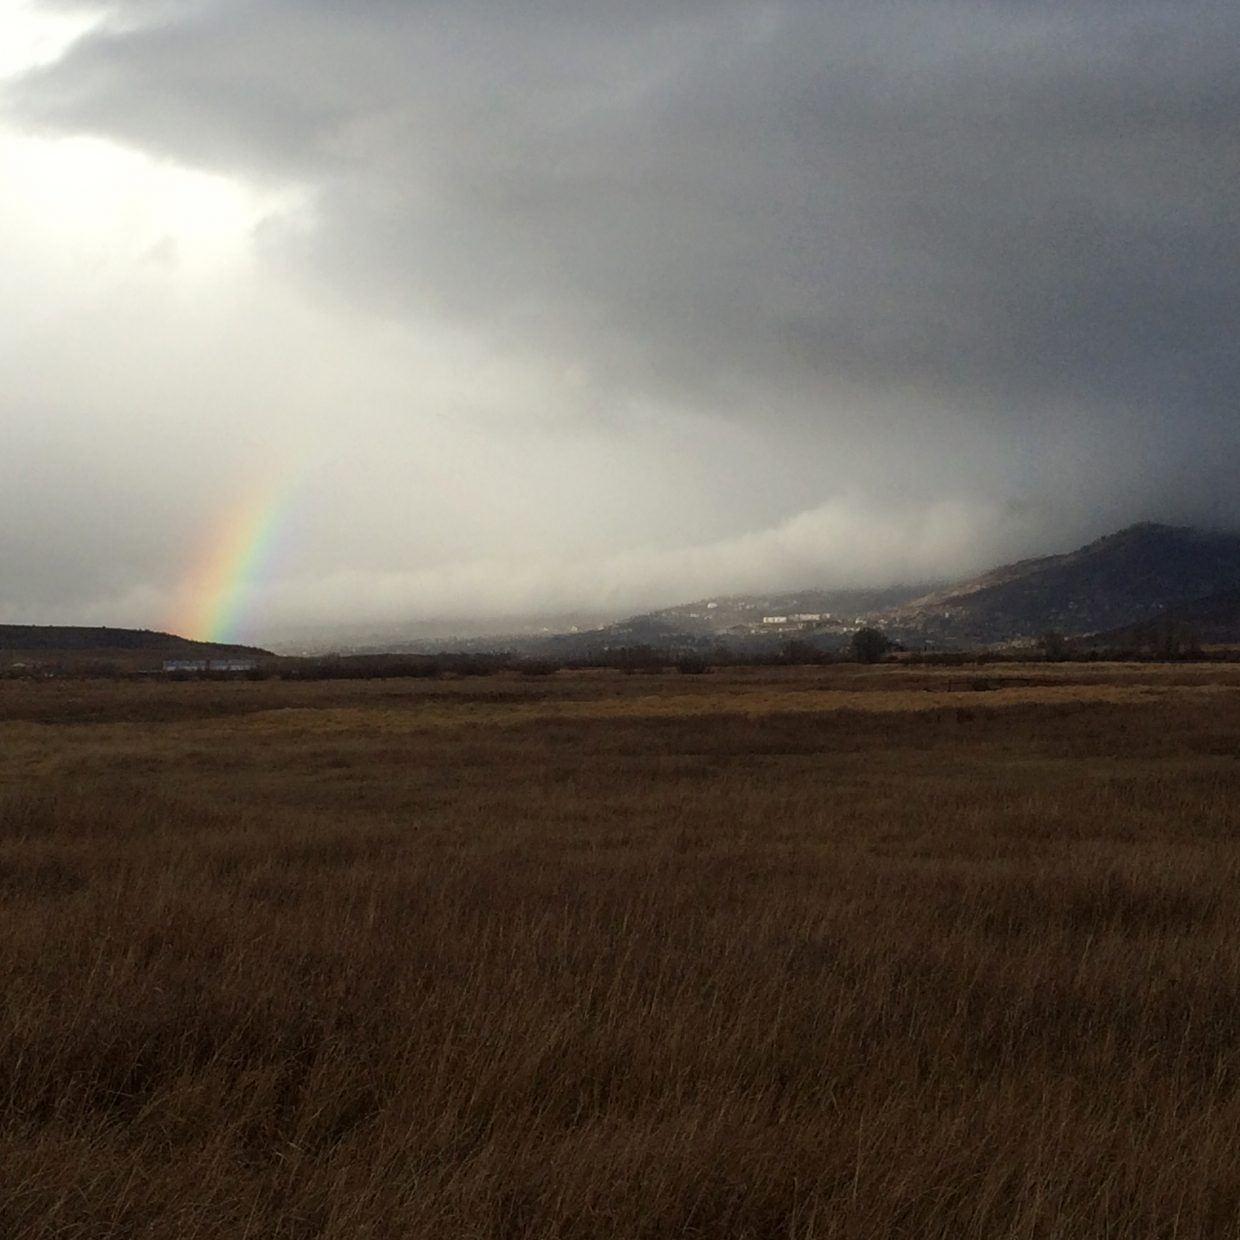 View from the south of rainbow'ette emerging over Dakota Ridge and arcing toward the base of Steamboat Ski Area and lower mountain, photo taken amidst Sunday's squalls around 3:30 MST. Submitted by: Kean Monahan